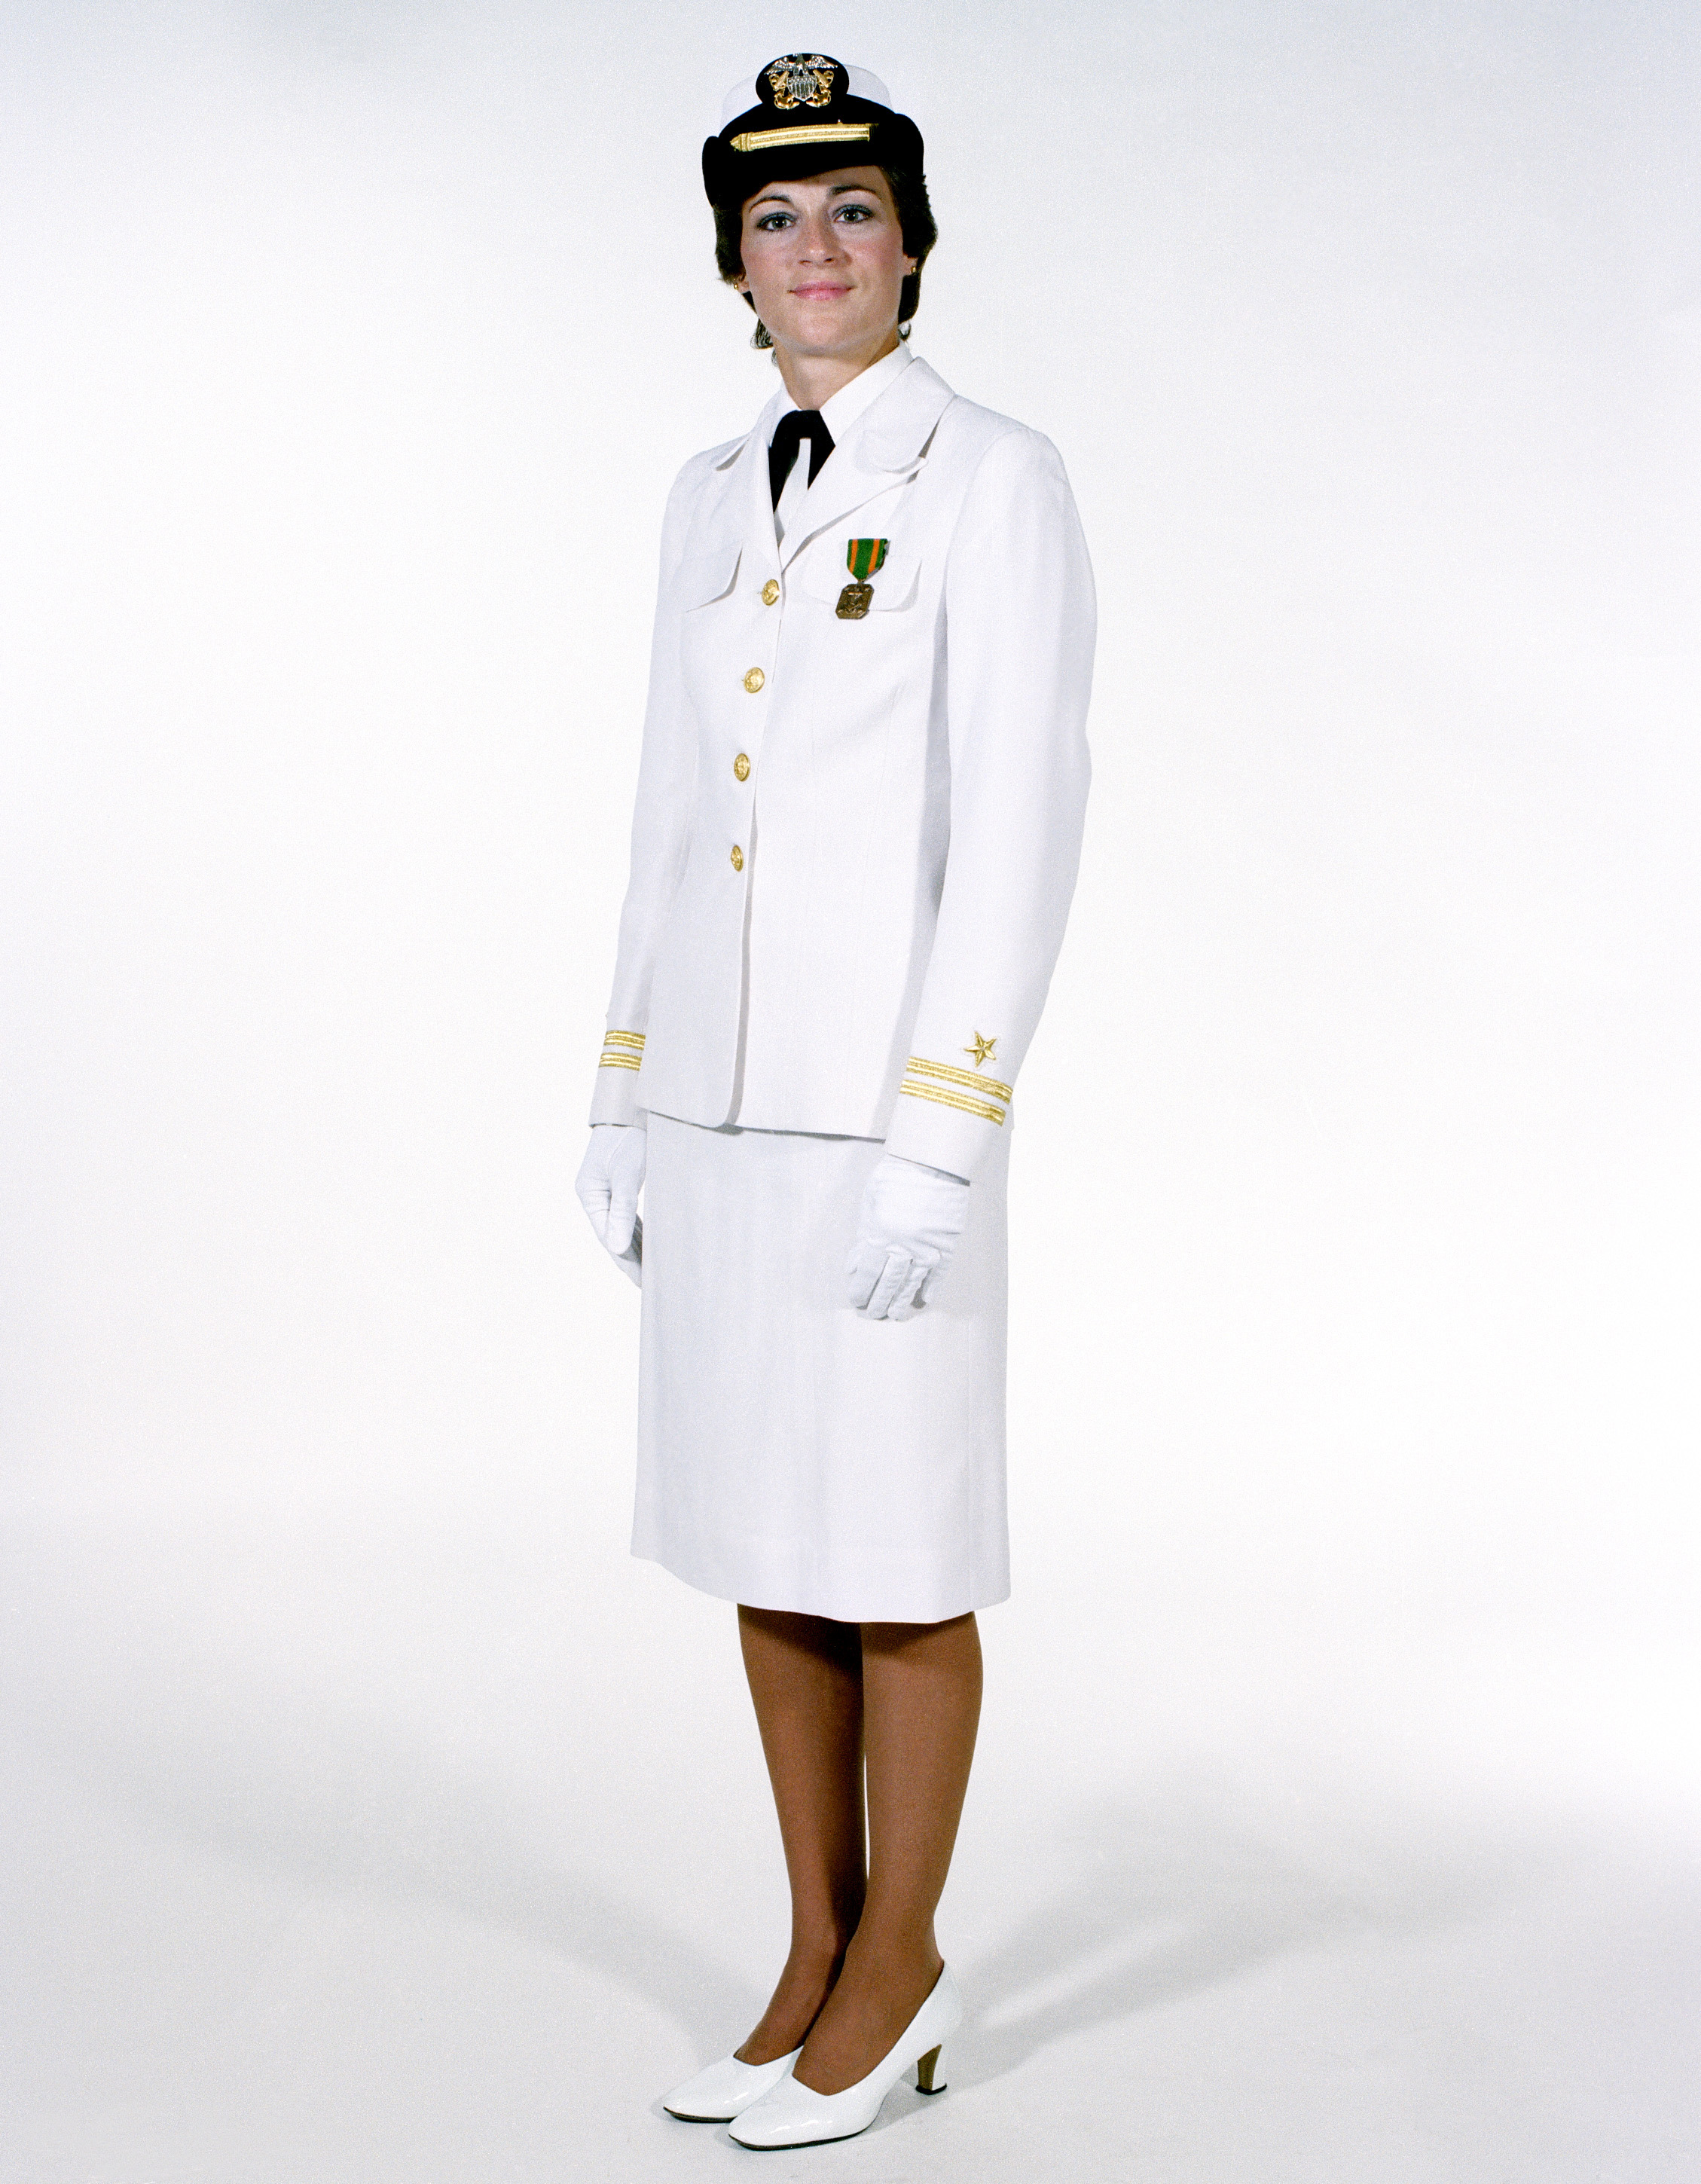 female navy uniform regulations facesit sex